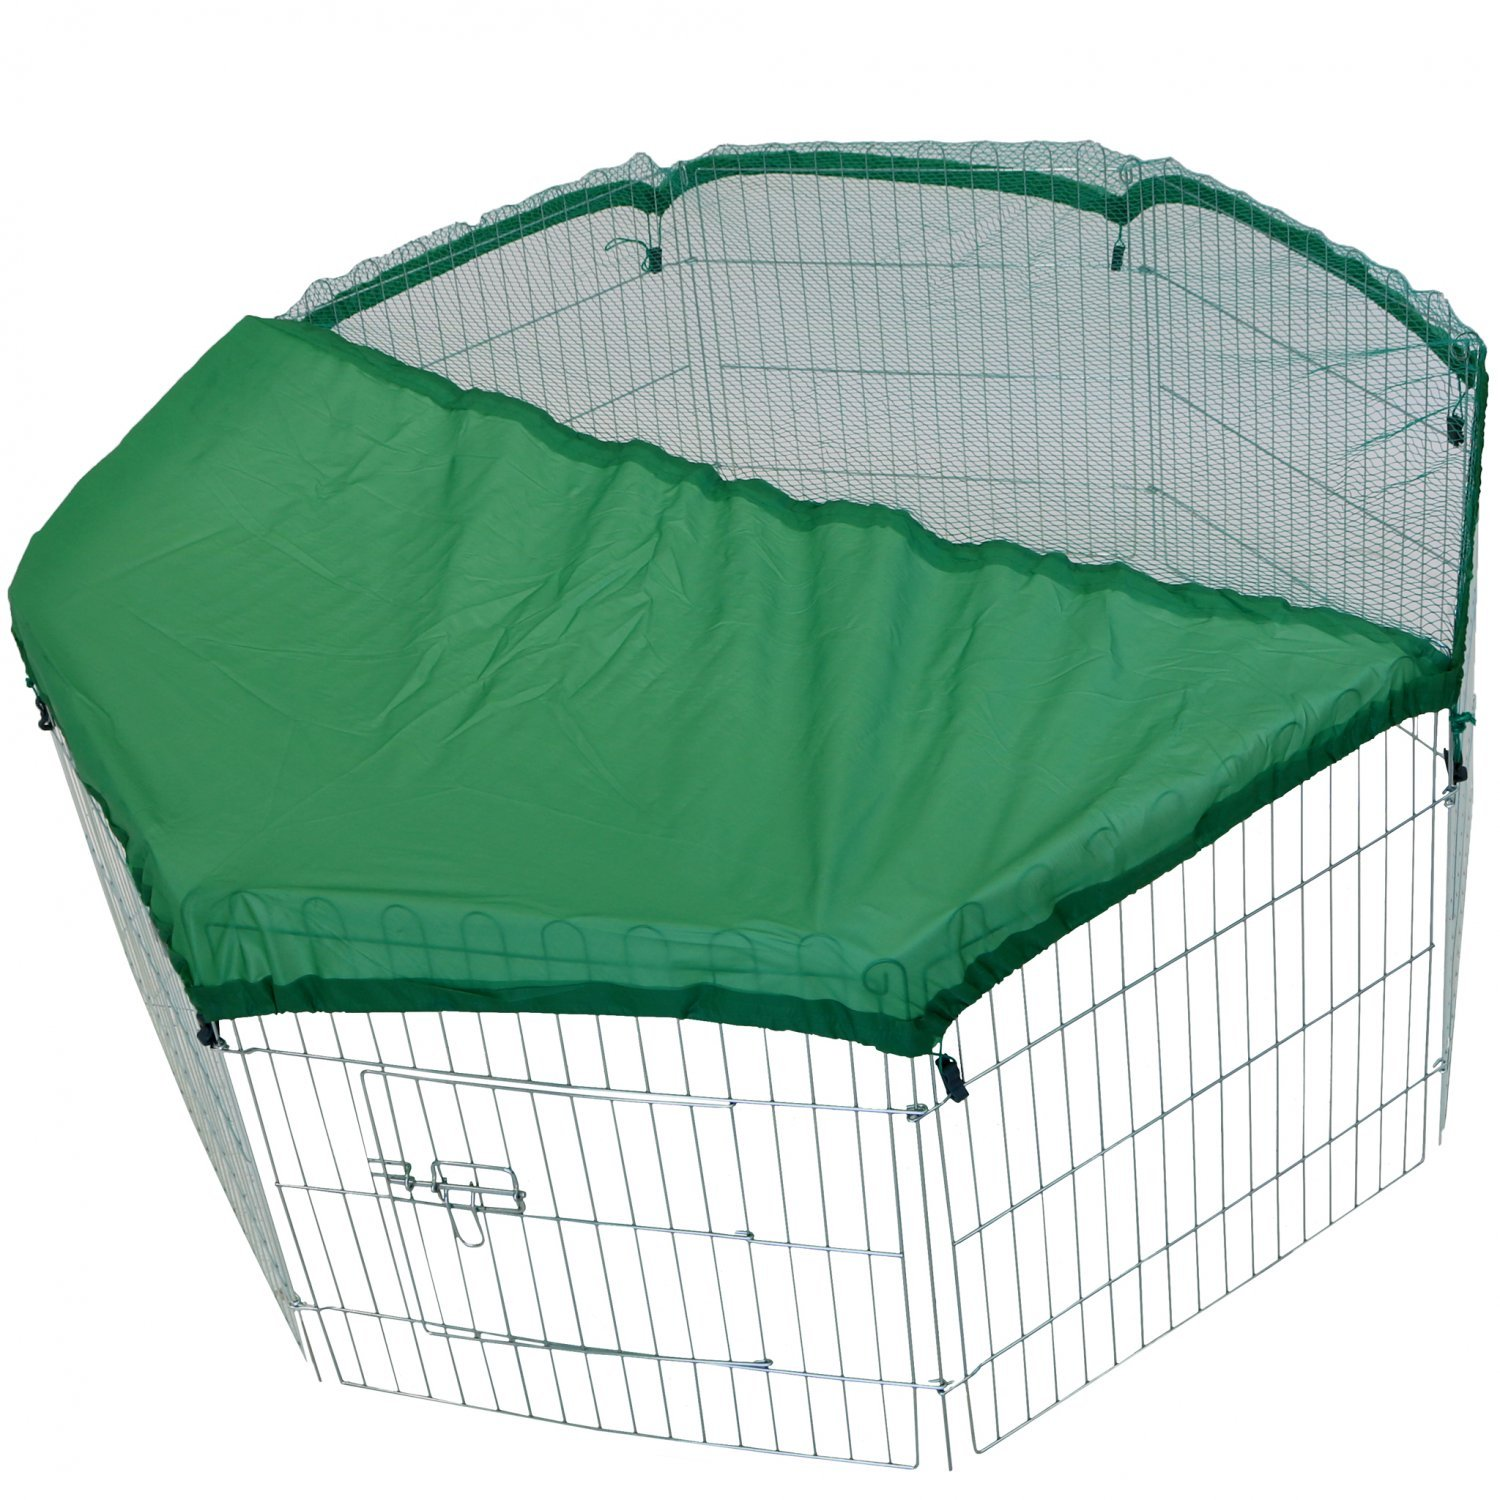 8 Panel Outdoor Rabbit Play Pen Run With Shade Safety Net